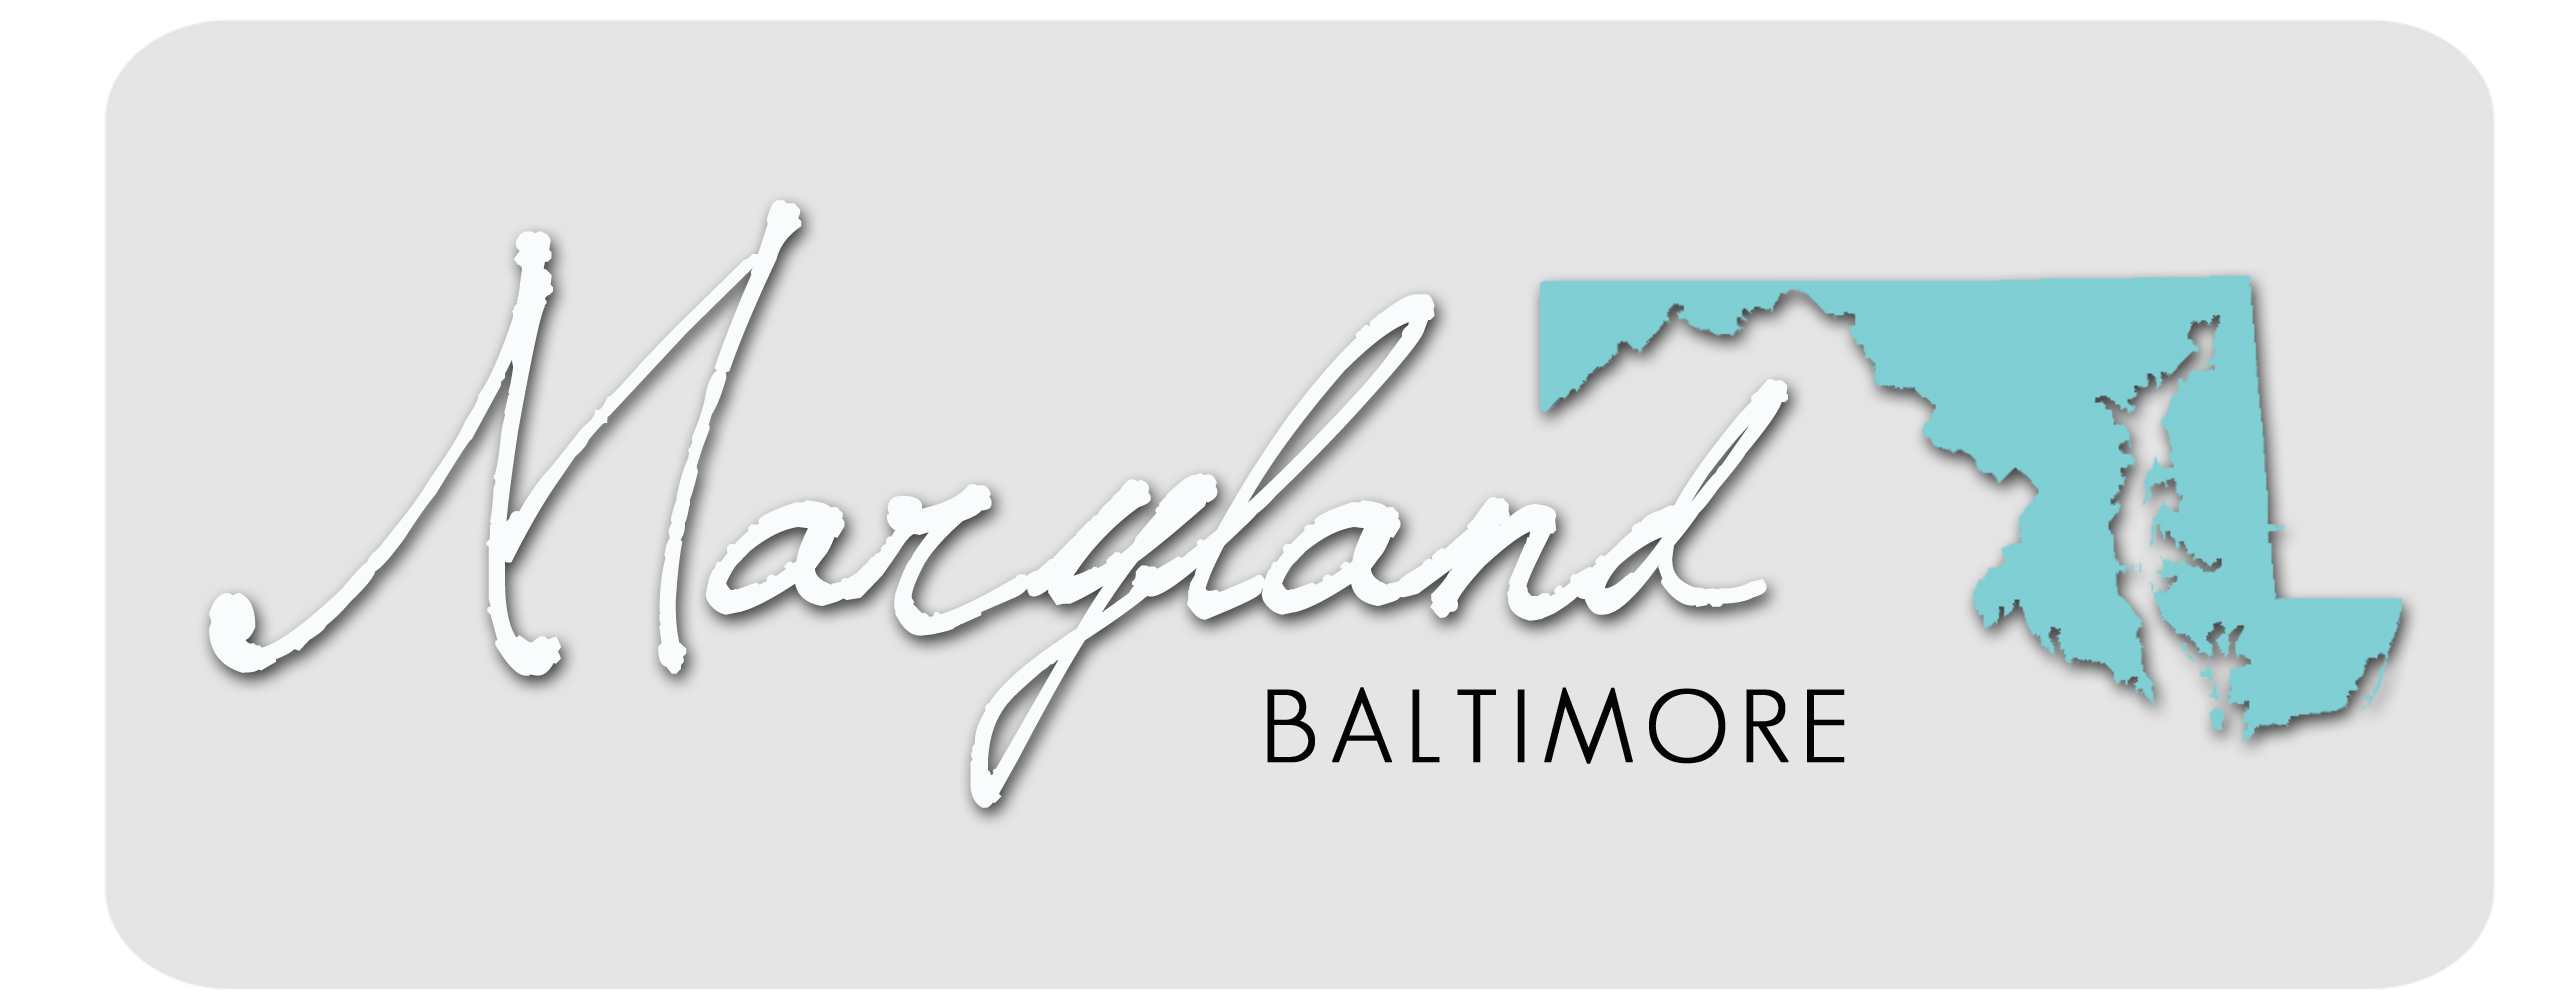 Baltimore health insurance